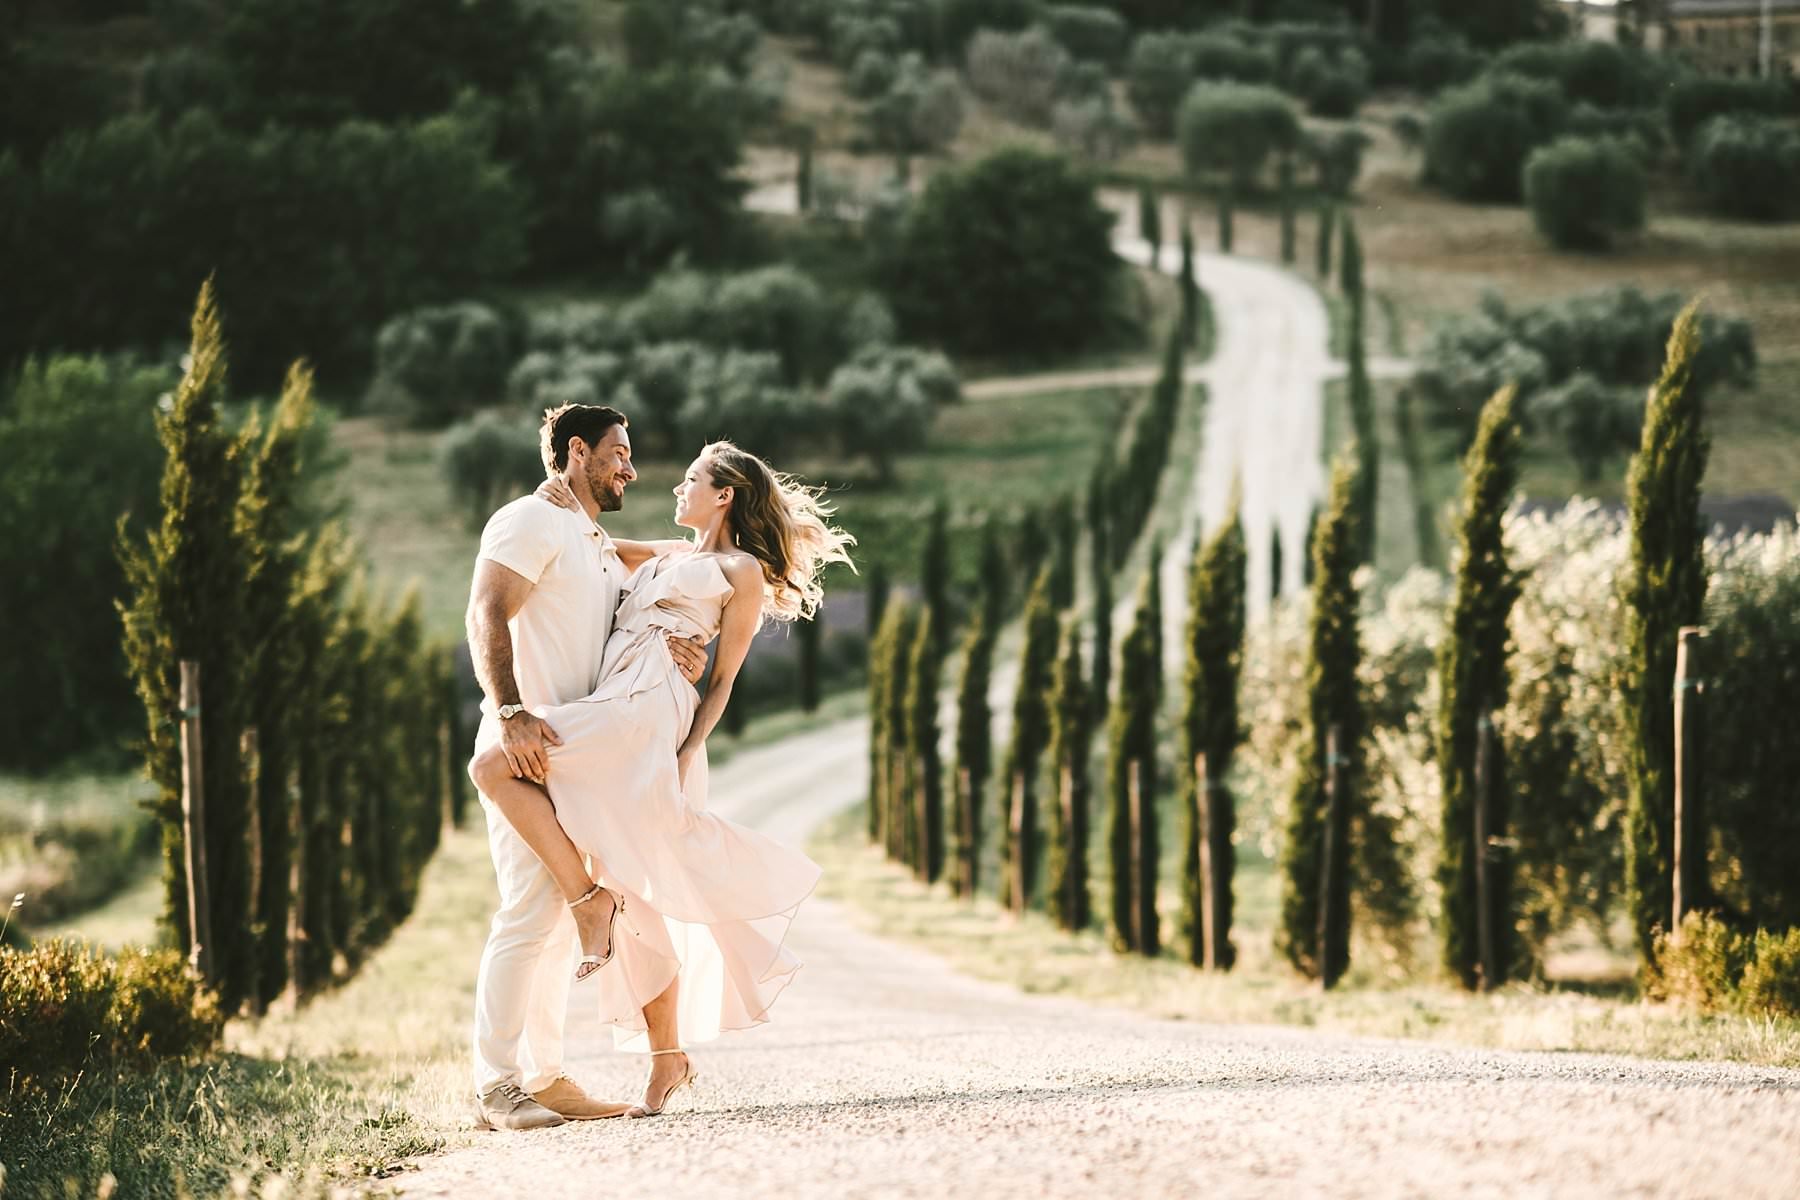 Dreamy Italy elopement with vows renewal in Val d'Orcia. Gorgeous couple honeymoon elopement wedding photo shoot in Tuscany cypress street near Pienza